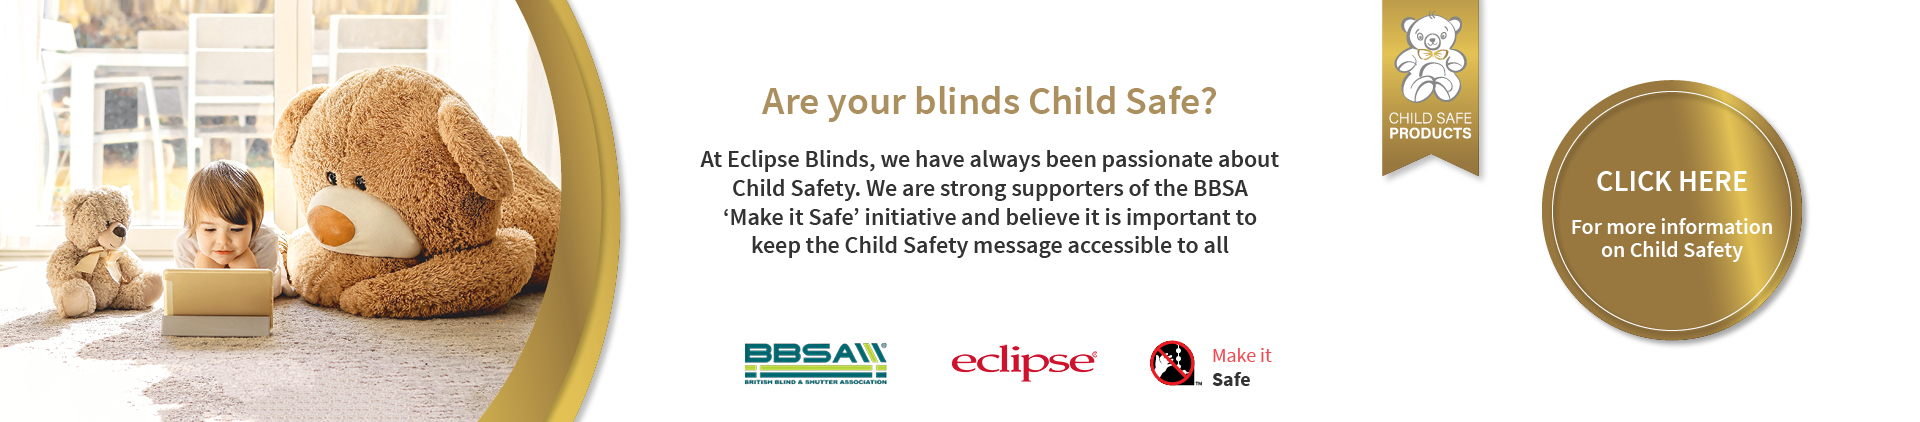 Child Safety Awareness